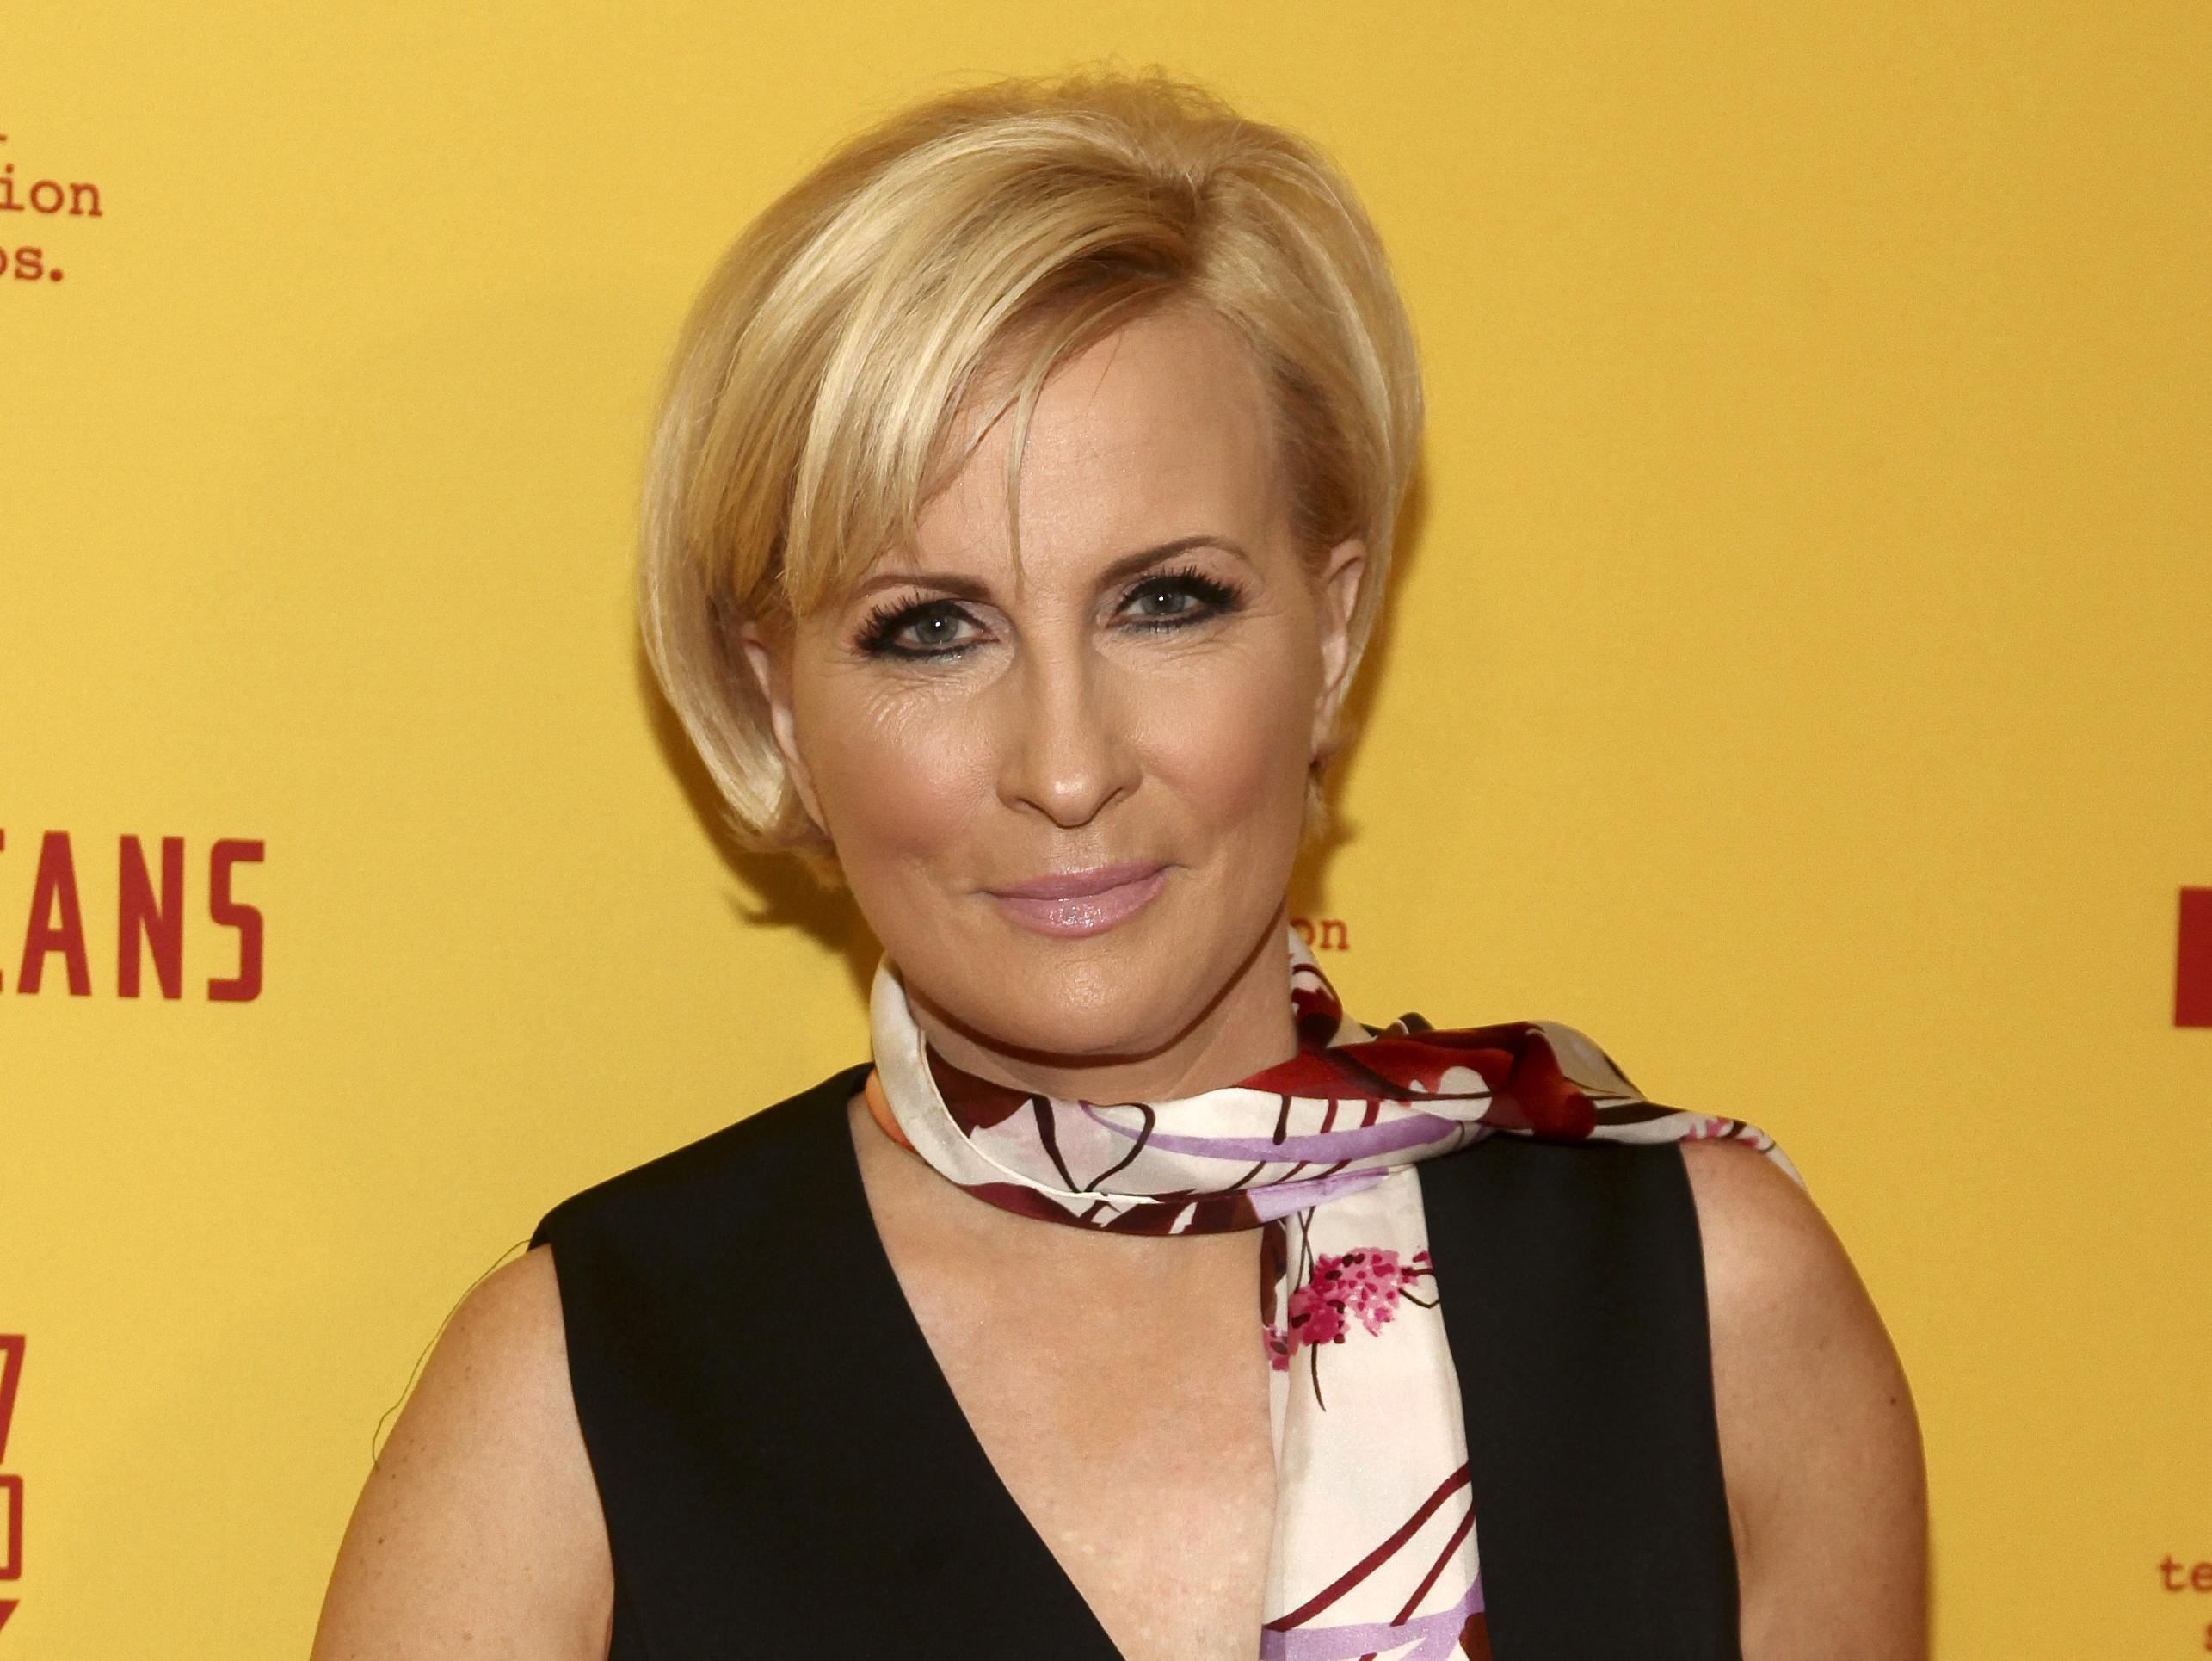 Mika Brzezinski: My father on his deathbed 'would cringe' when he heard Trump's name